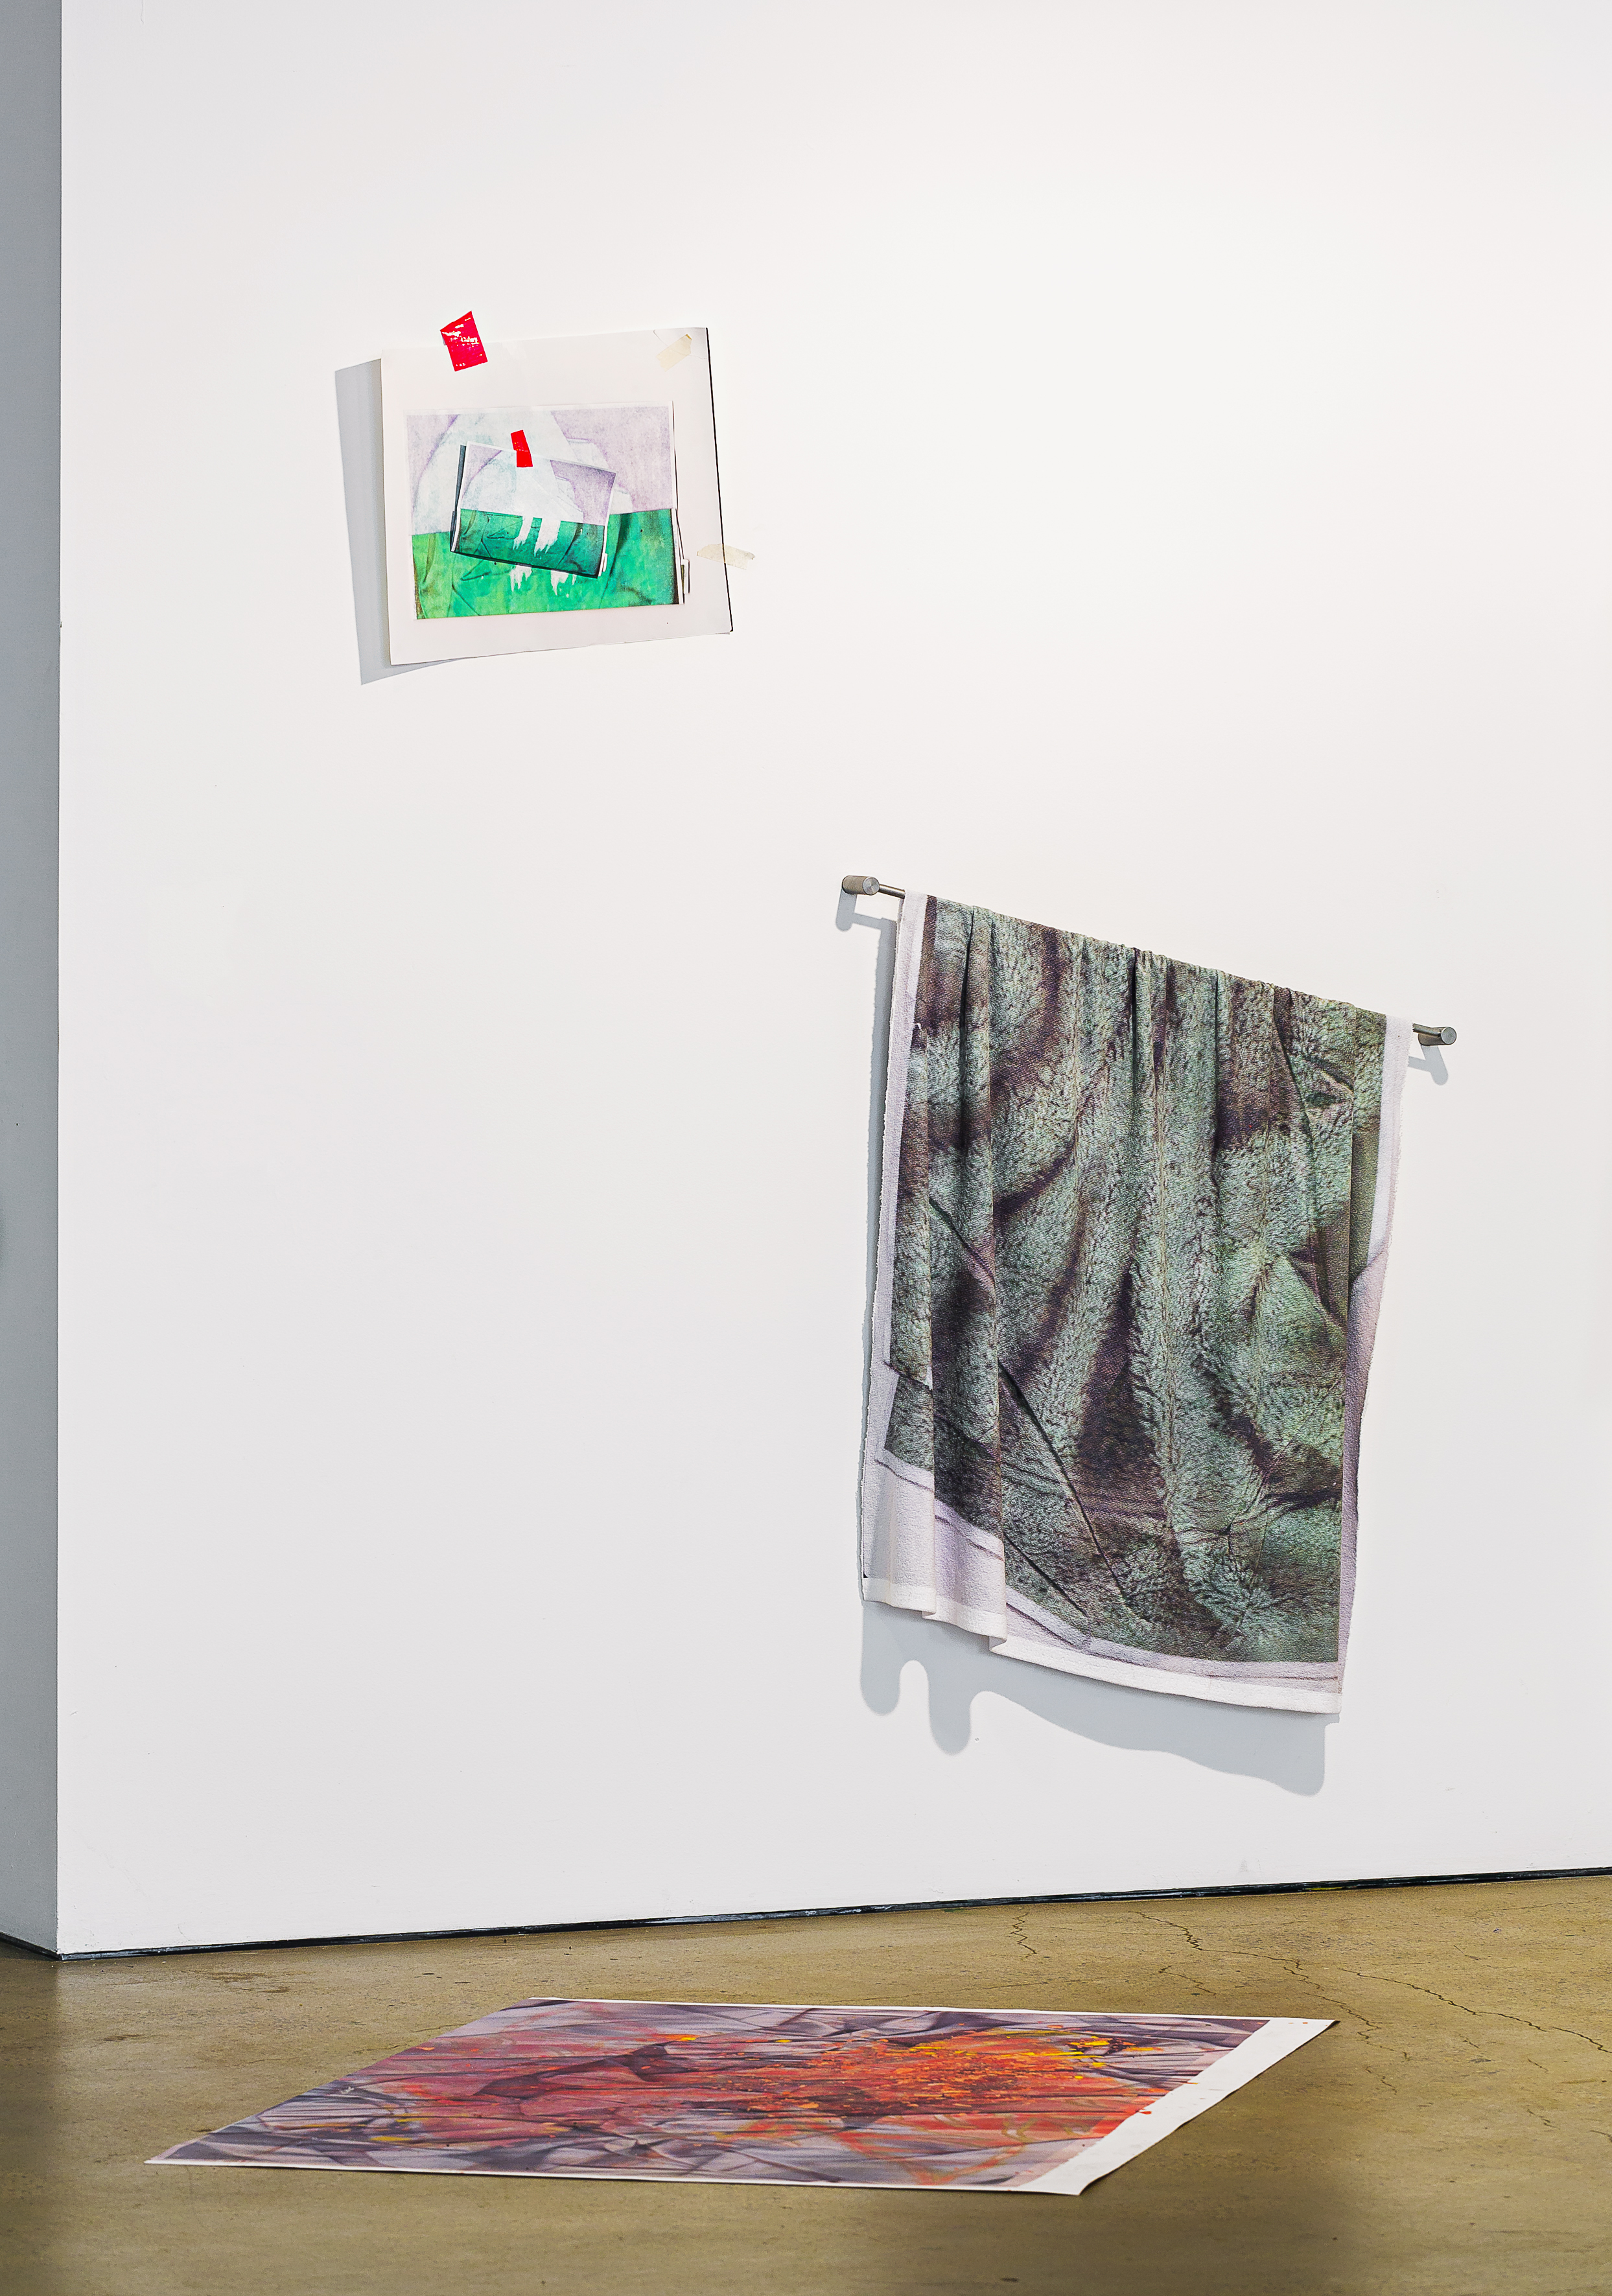 Installation for UNSW Art & Design ANNUAL 16 at UNSW Galleries  Photo: Document Photography   Enquire